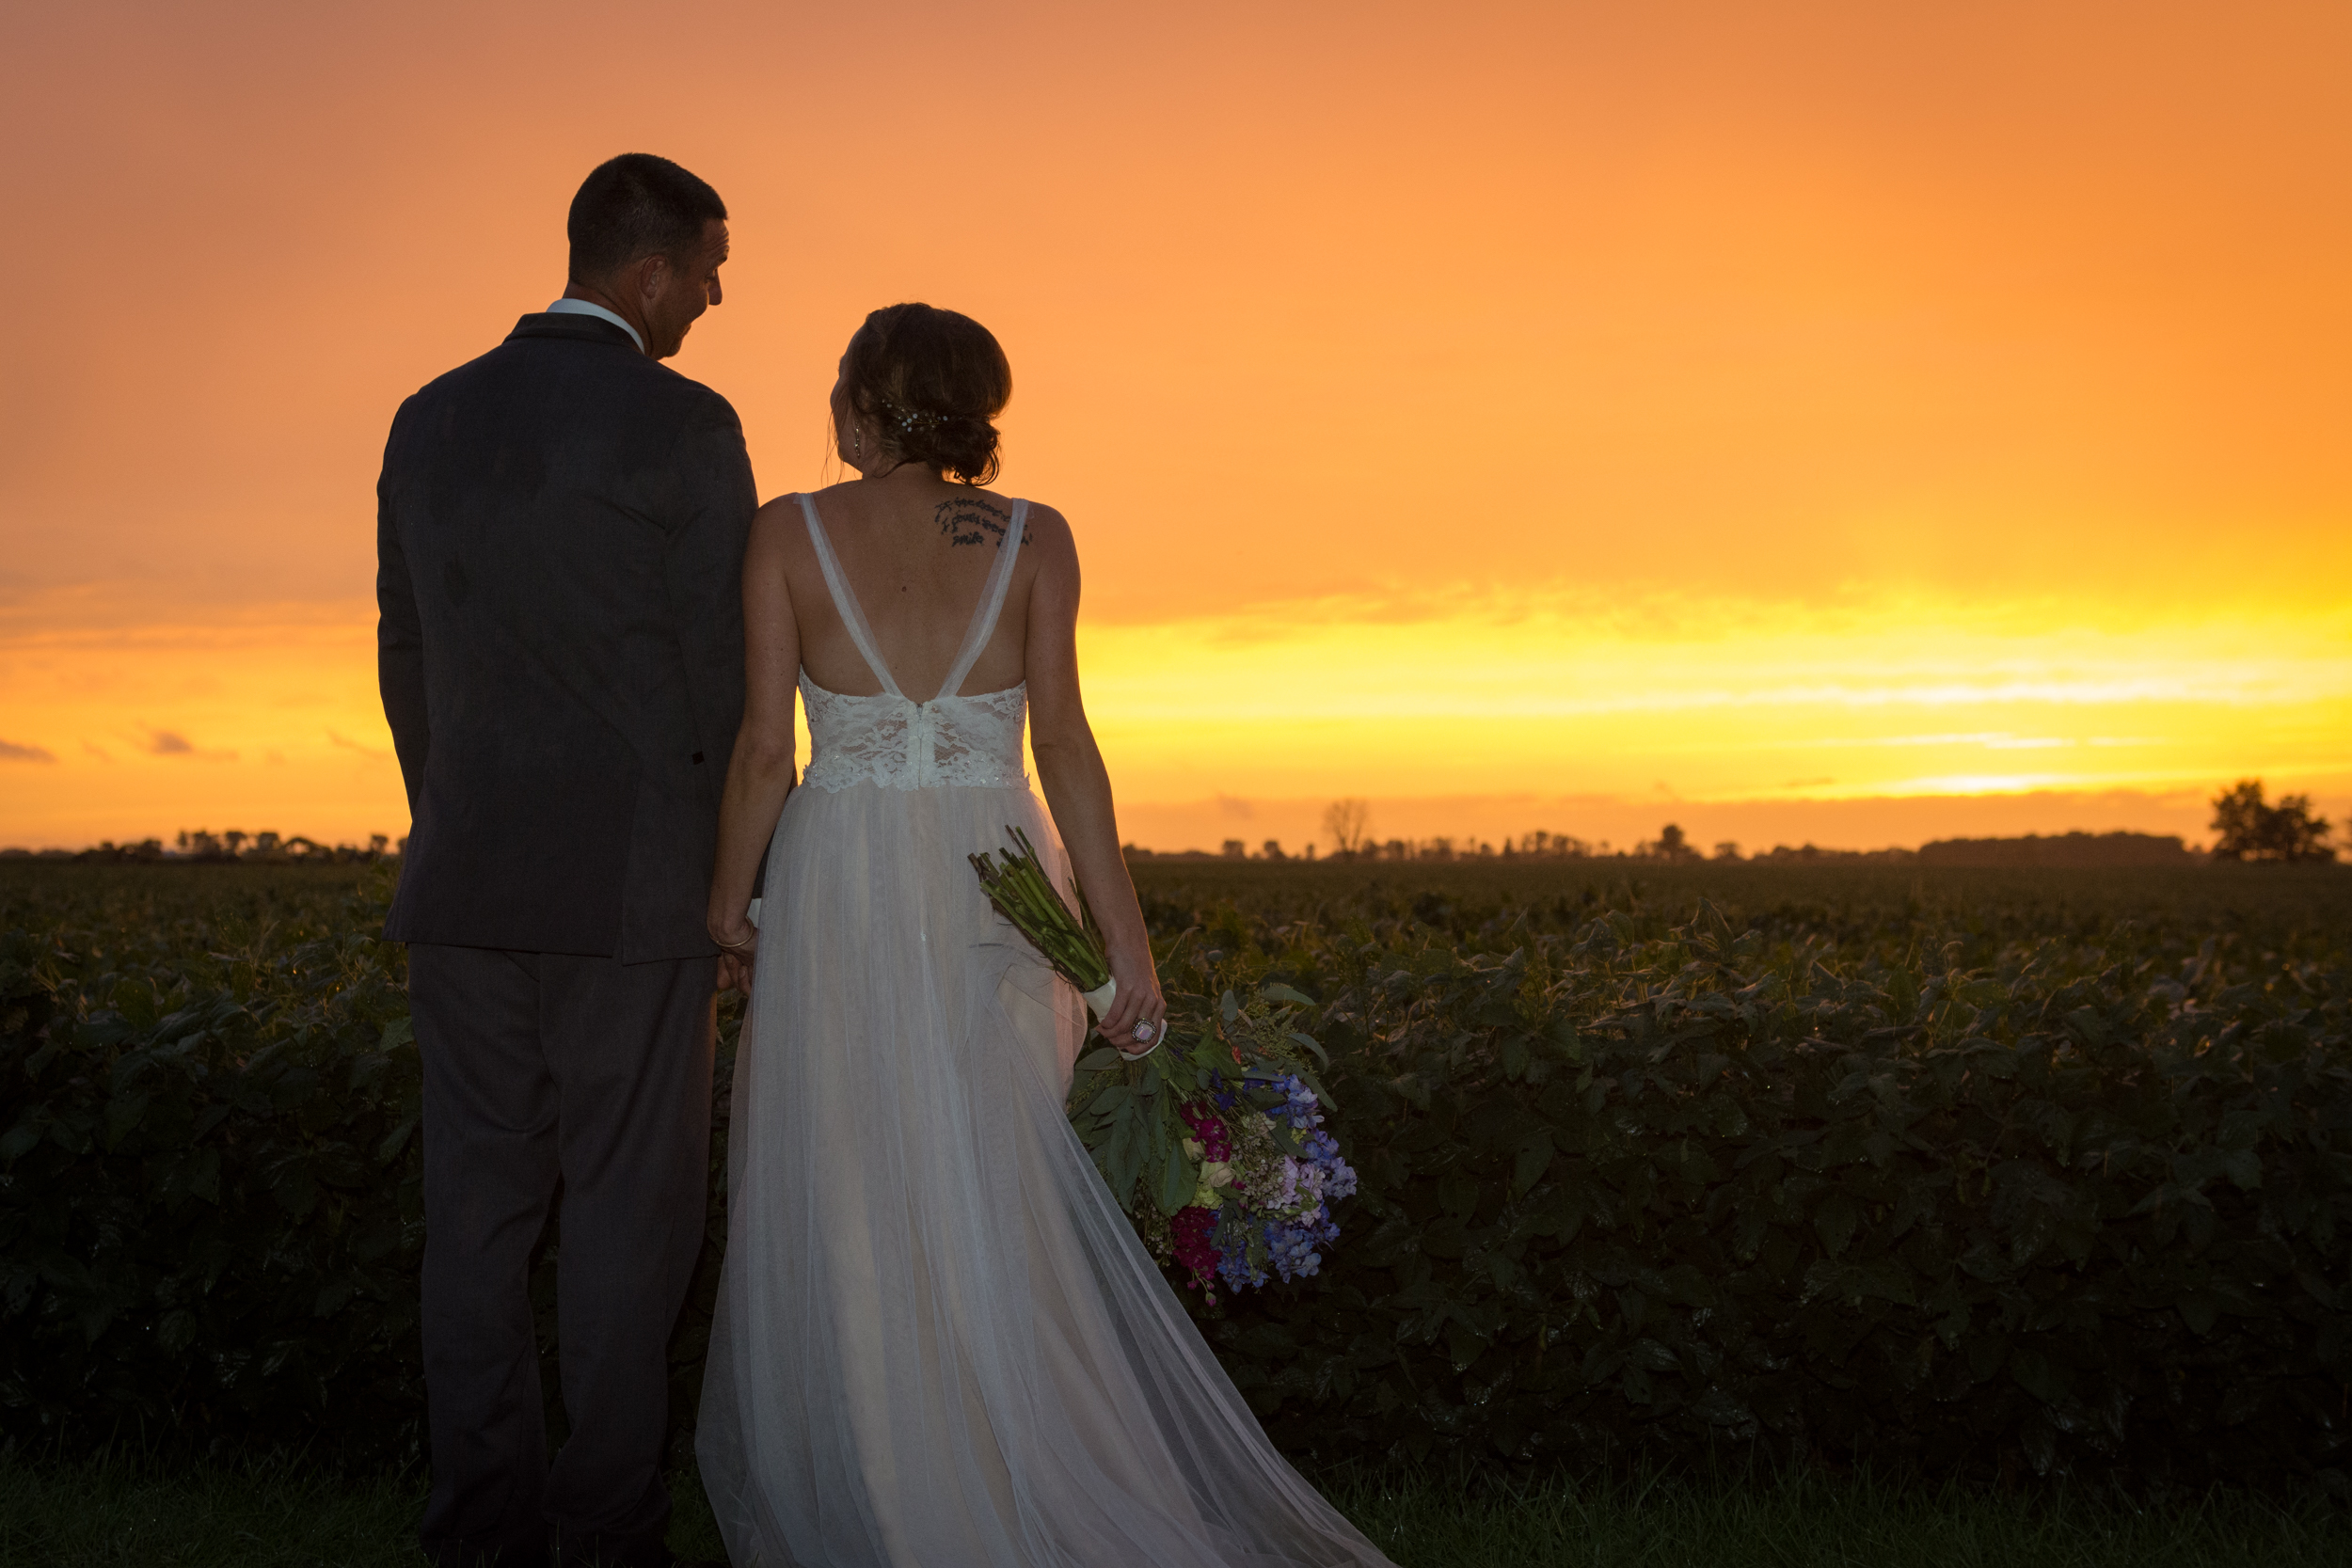 Life_by_pictures_photography dick wedding mount sterling ohio september_11.jpg